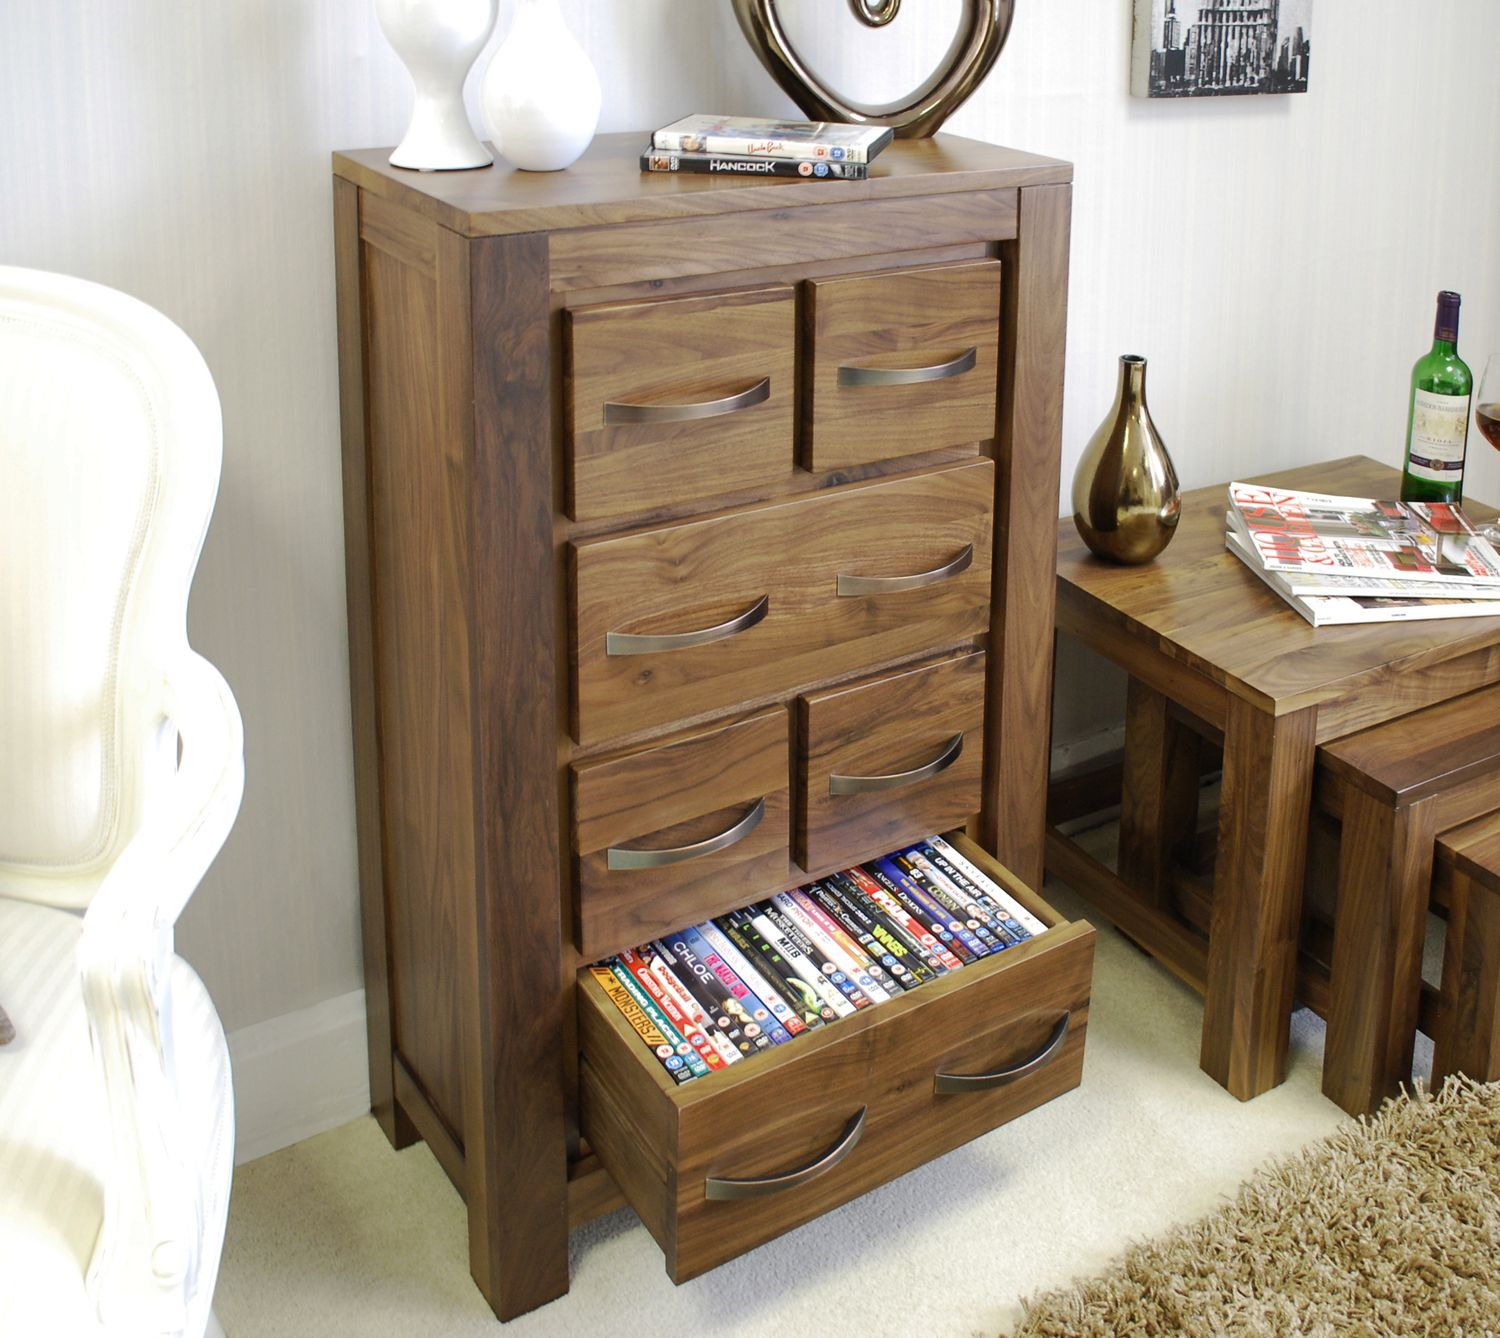 storage wooden doors dvd drawers garage with shelves large cabinets wood cabinet plans